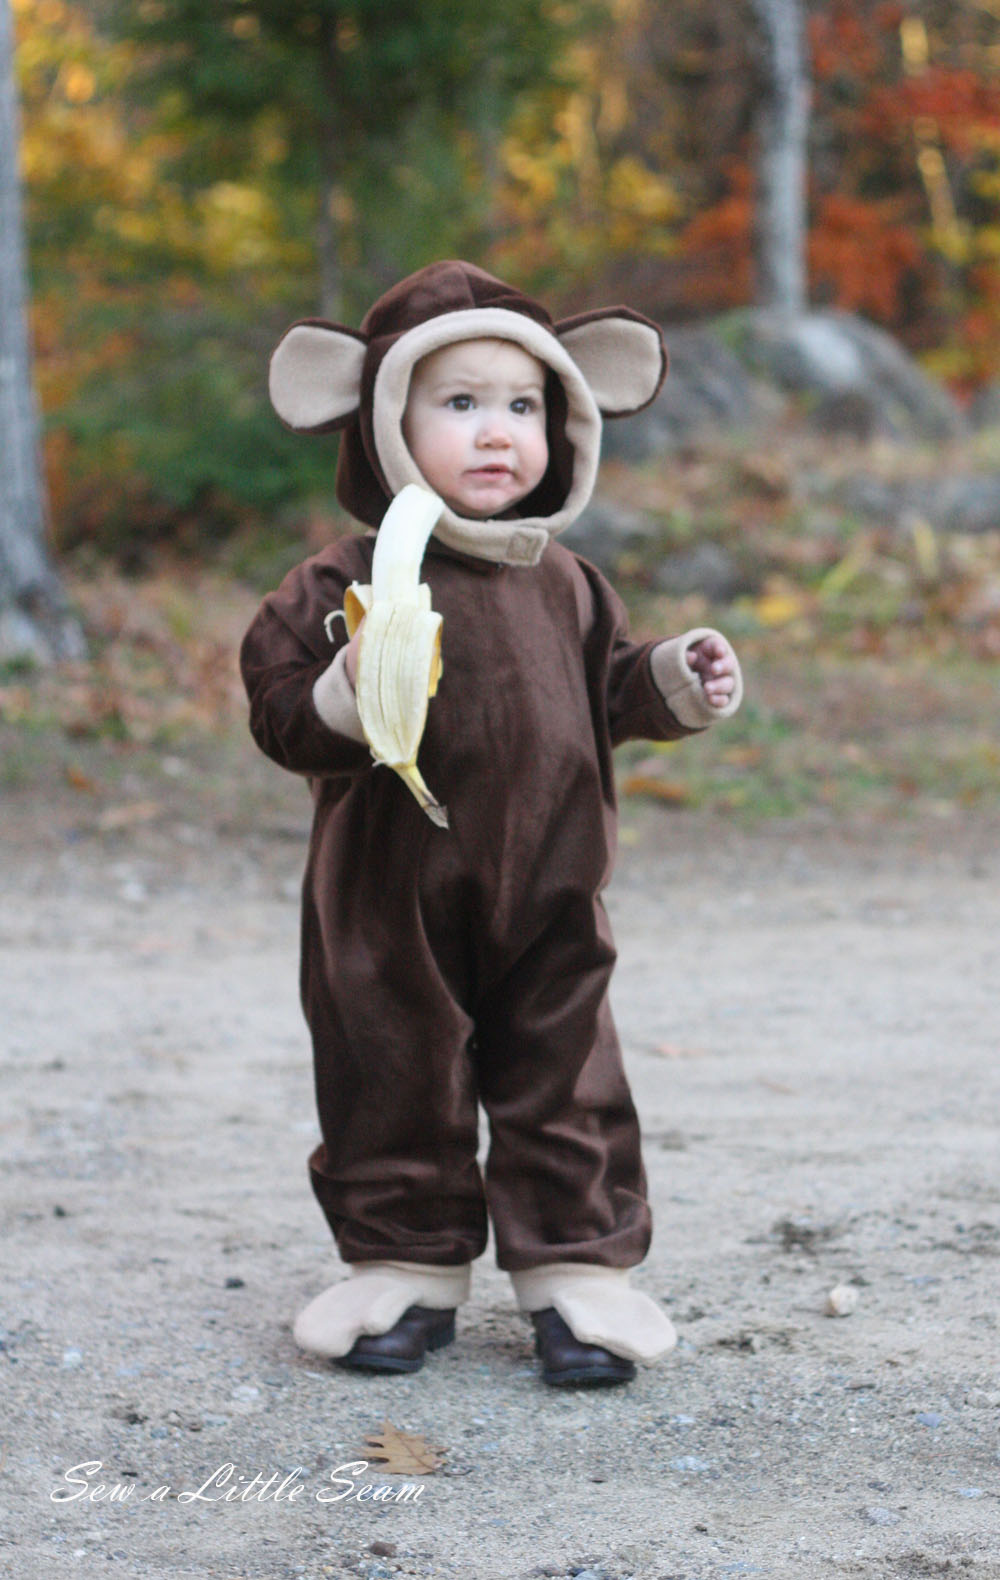 This free animal costume comes in size 2T. It includes piece to make a puppy or a monkey, but you could experiment and make a variety of costumes! You can find the tutorial here.